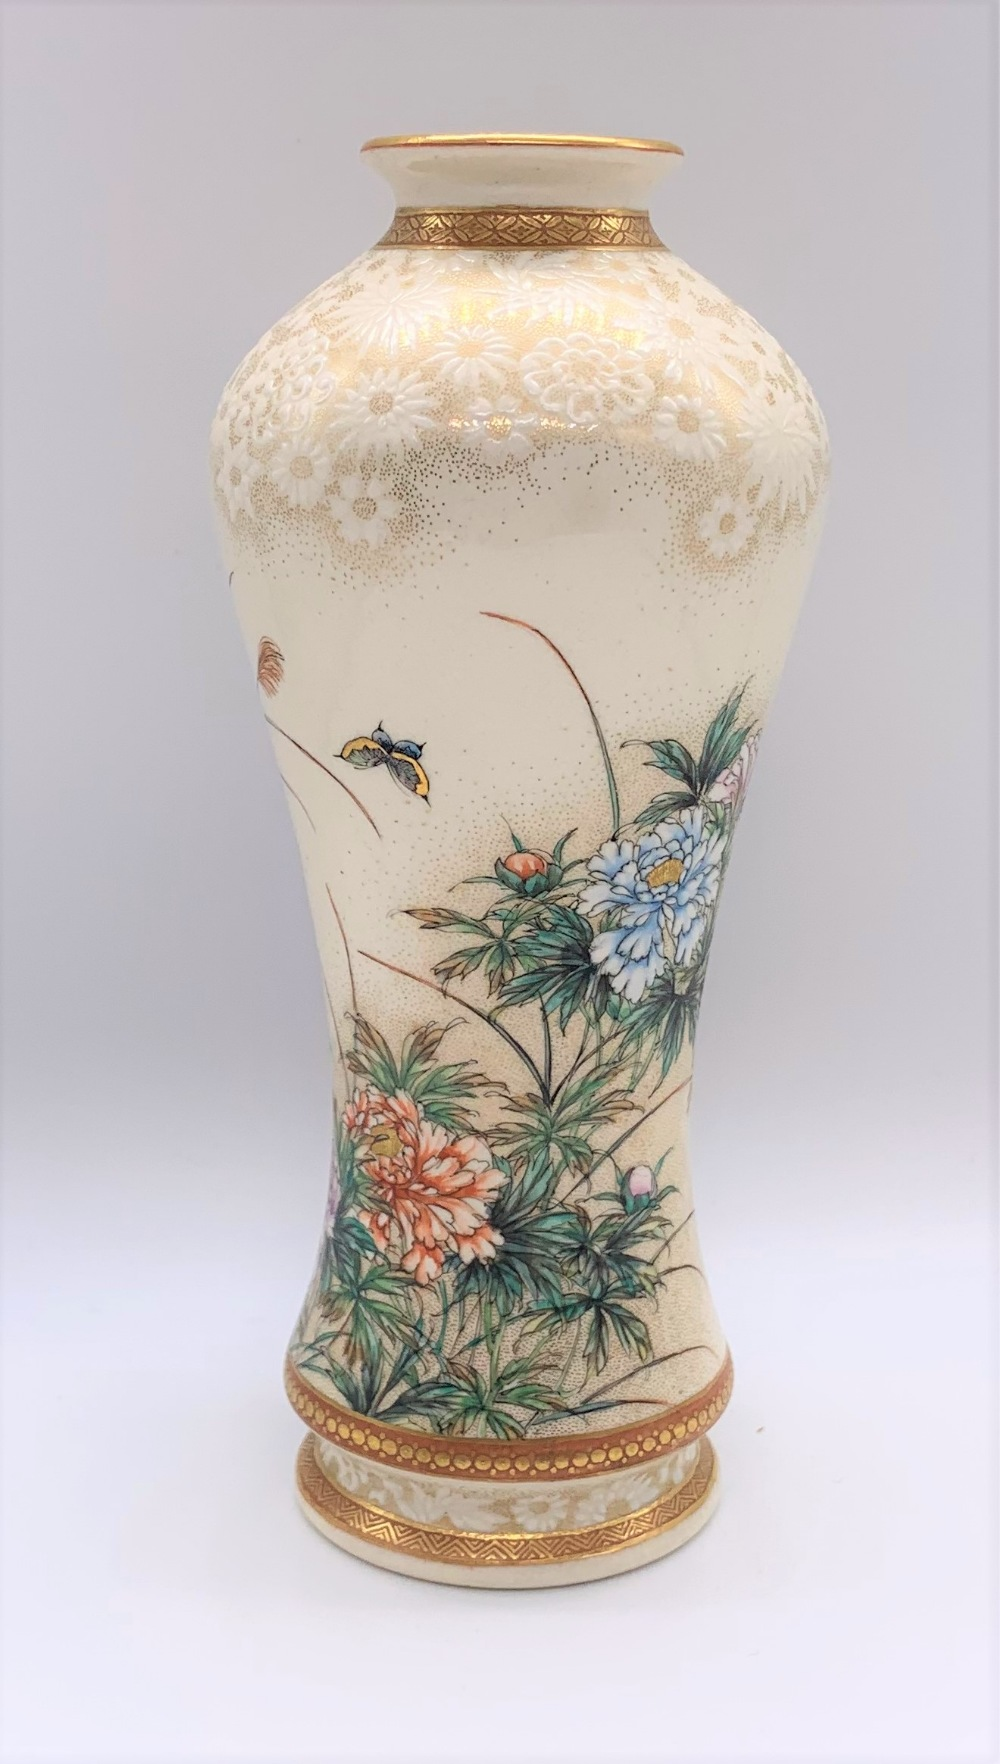 KINKOZAN; a good Japanese Meiji period Satsuma vase of waisted form decorated with butterflies